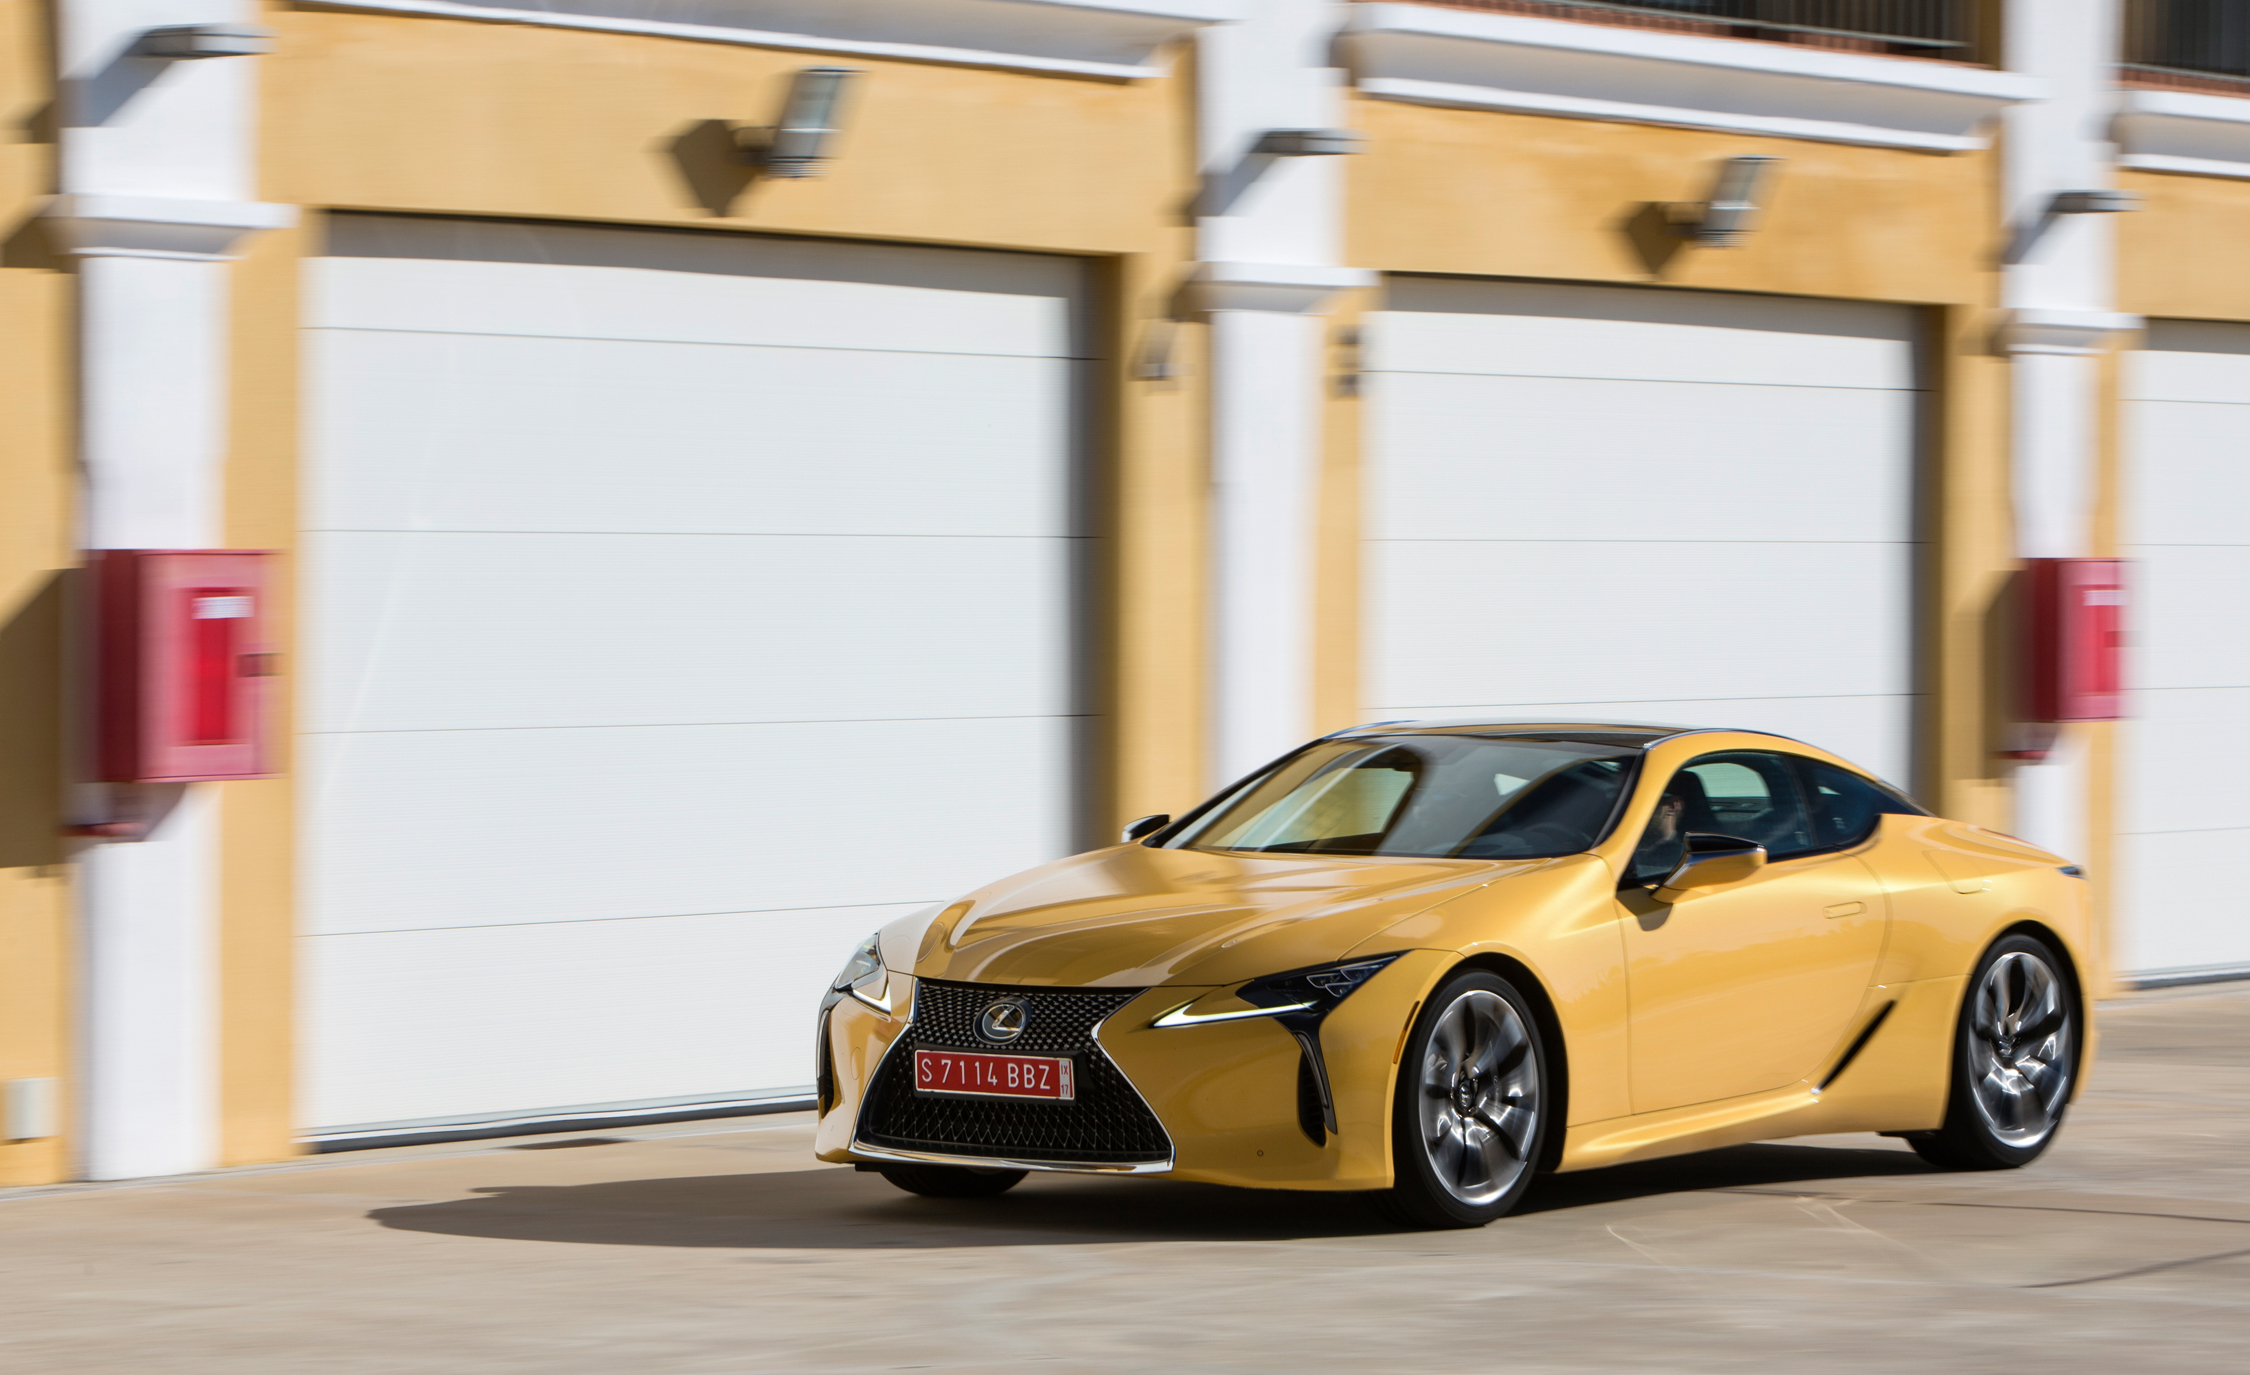 2018 Lexus Lc 500 Yellow Test Drive (View 13 of 84)